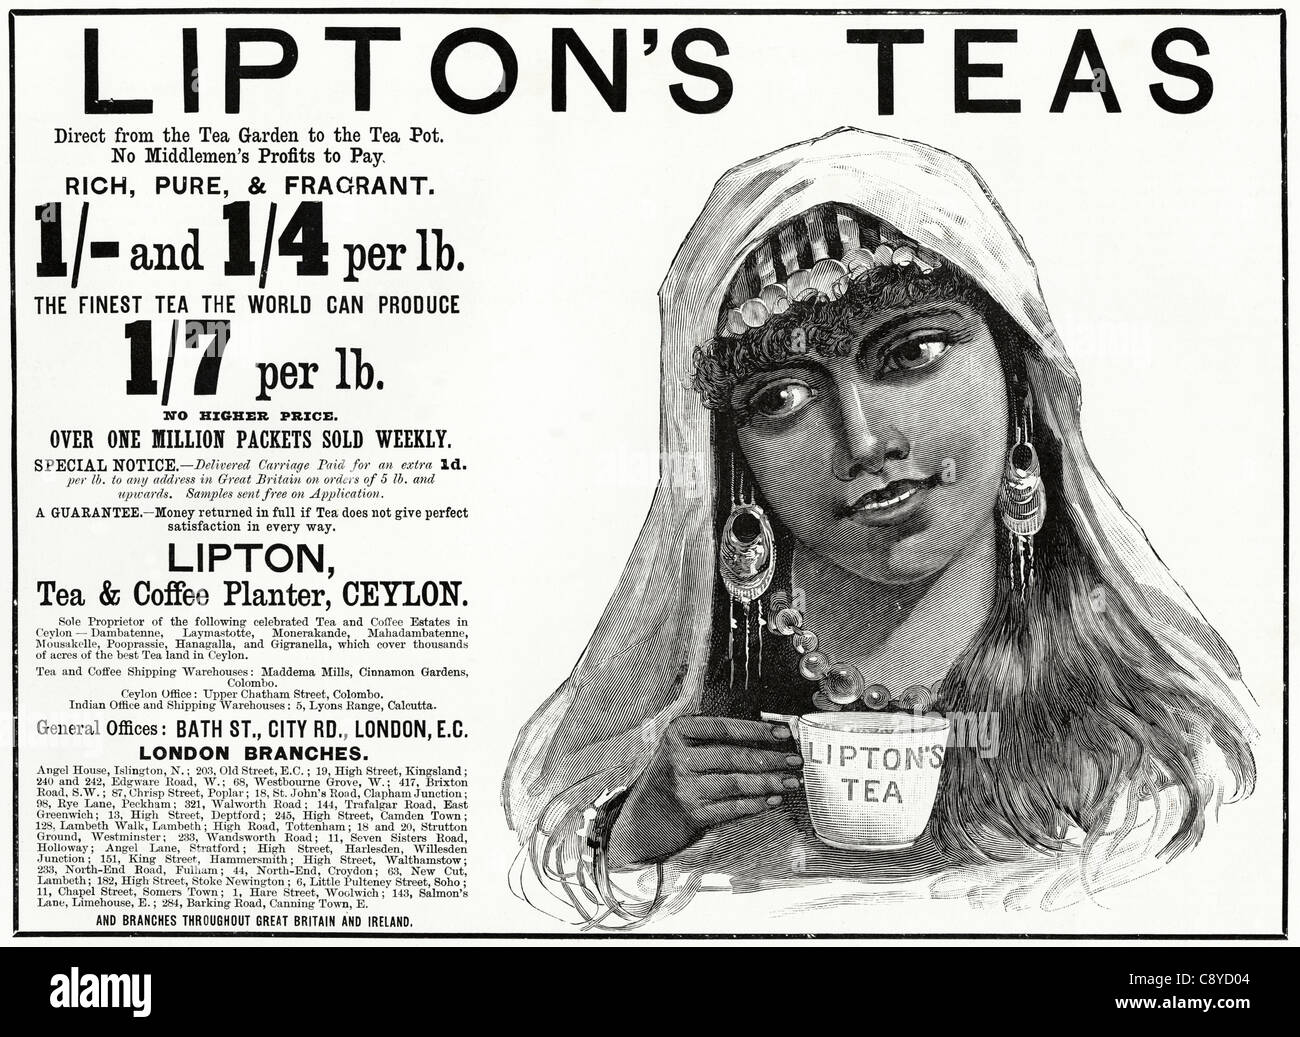 lipton s teas advert original victorian advertisement circa 1892